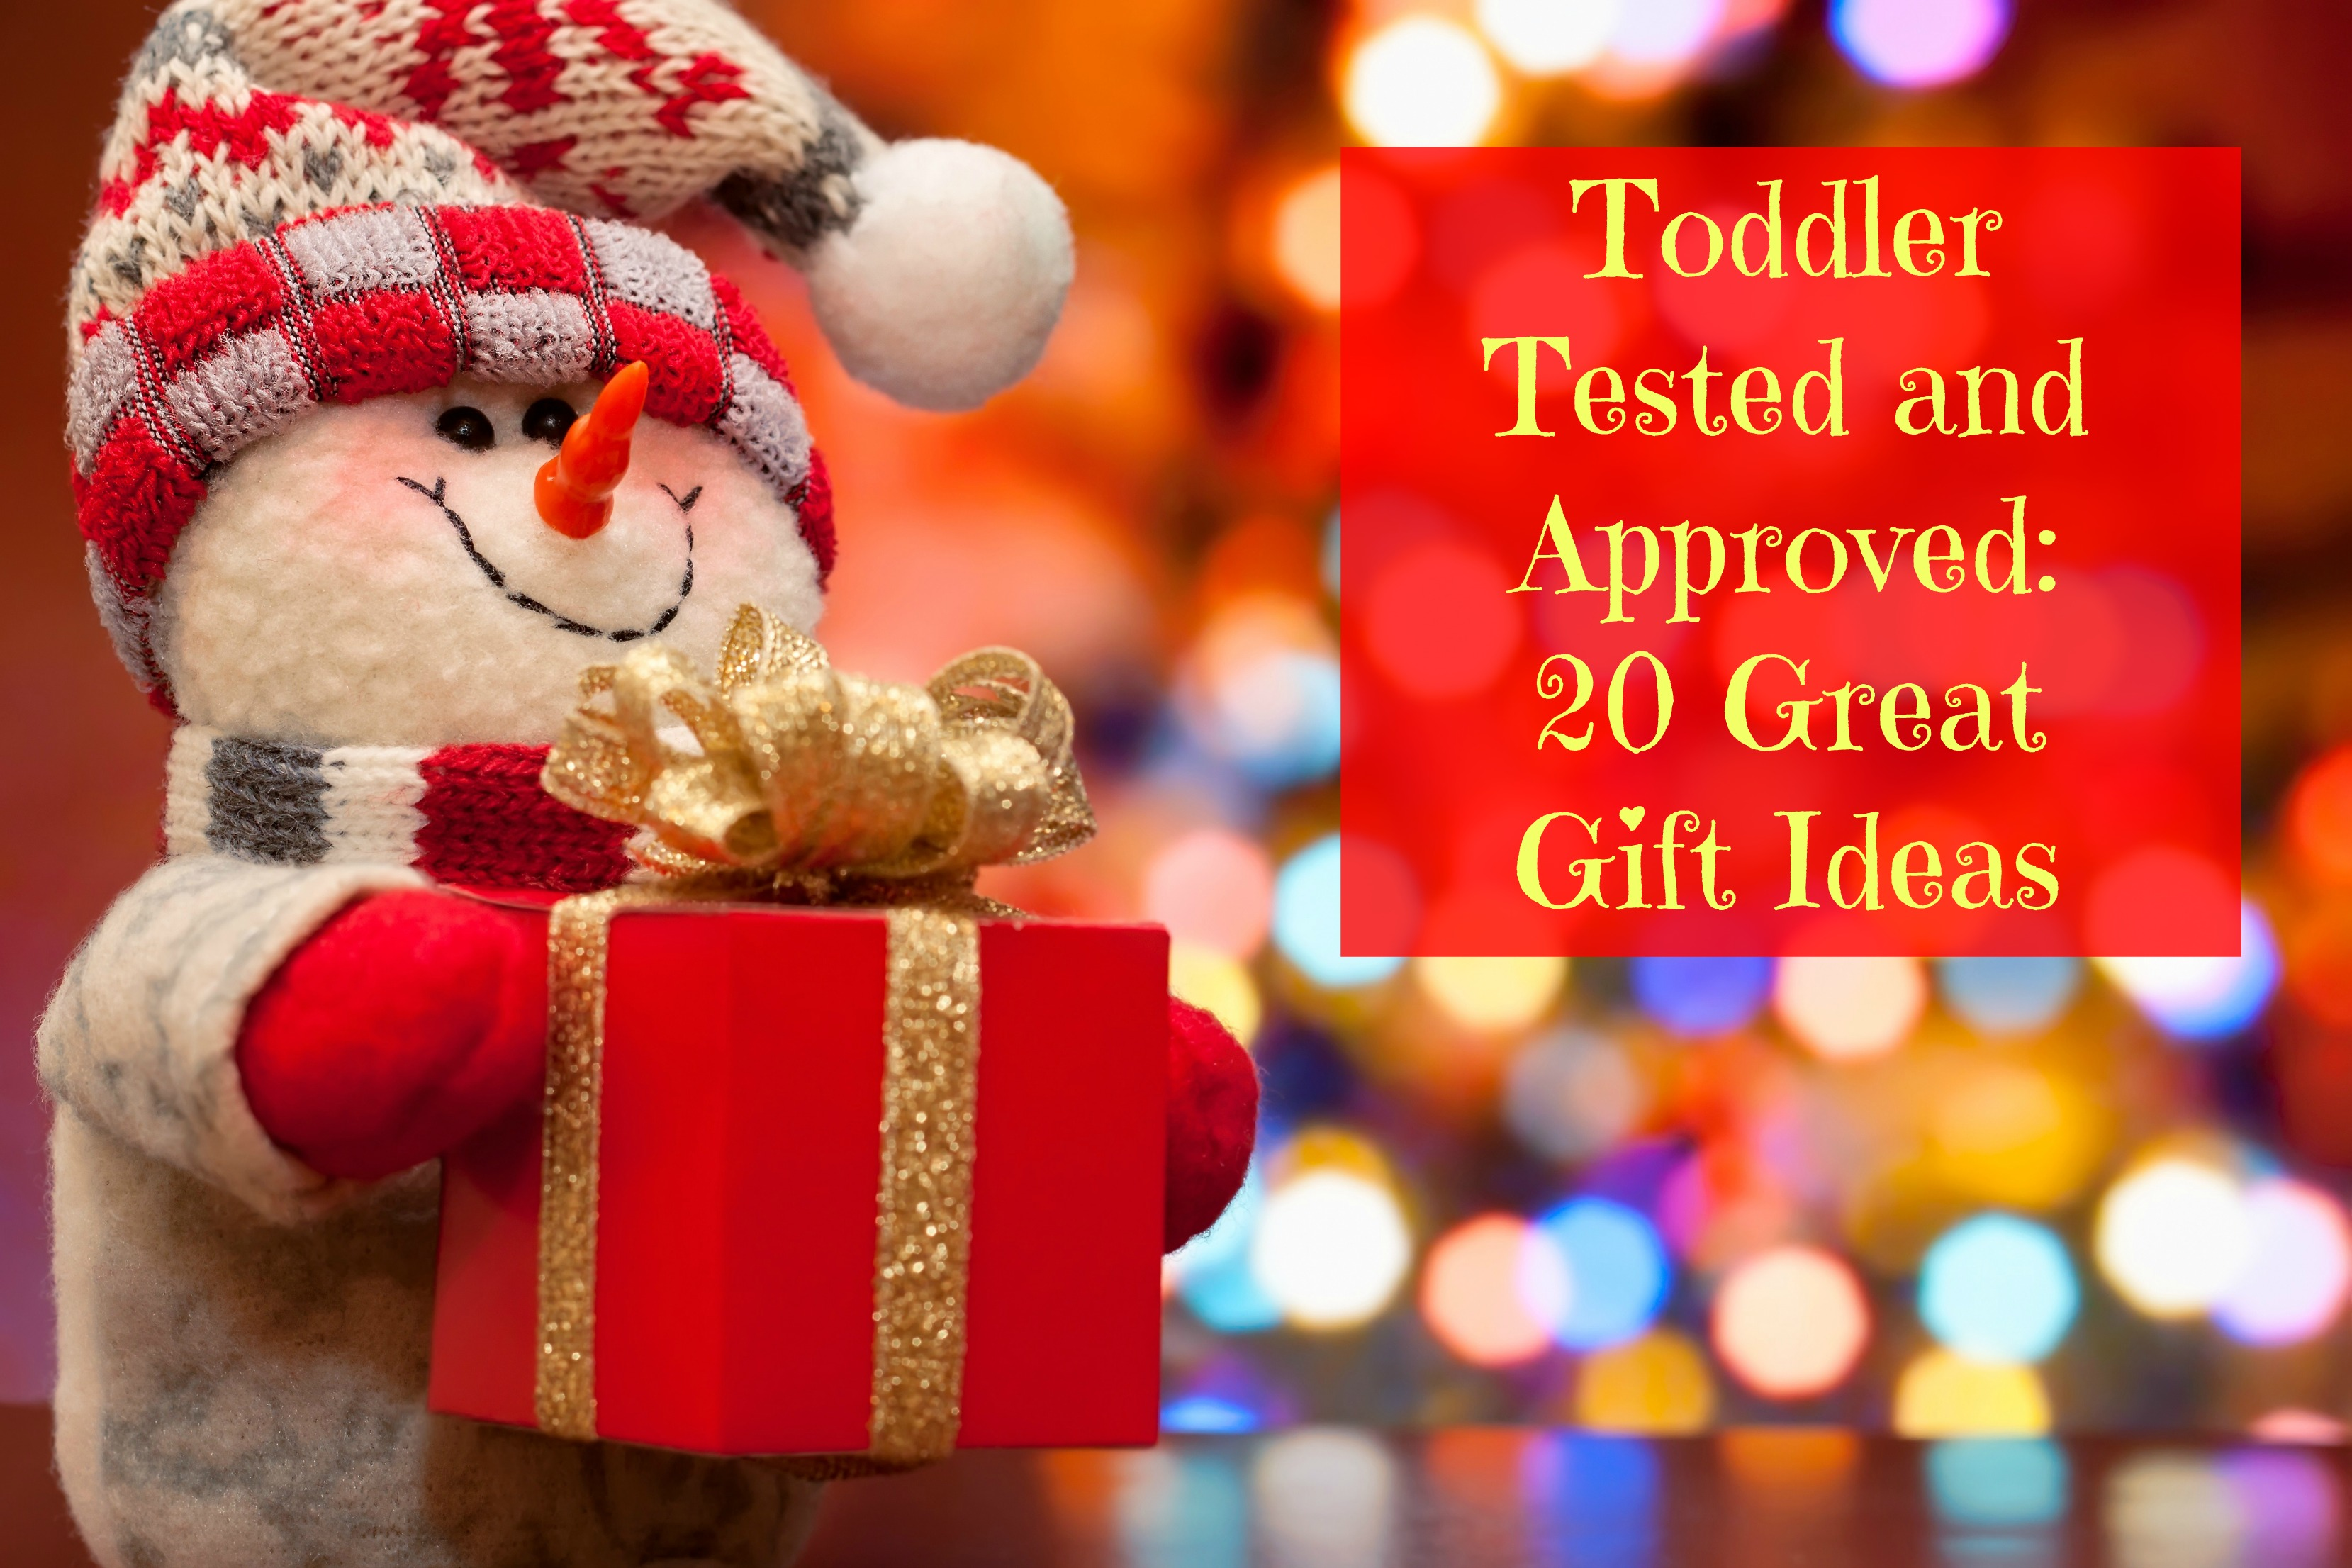 Toddler Tested and Approved: 20 Great Gift Ideas